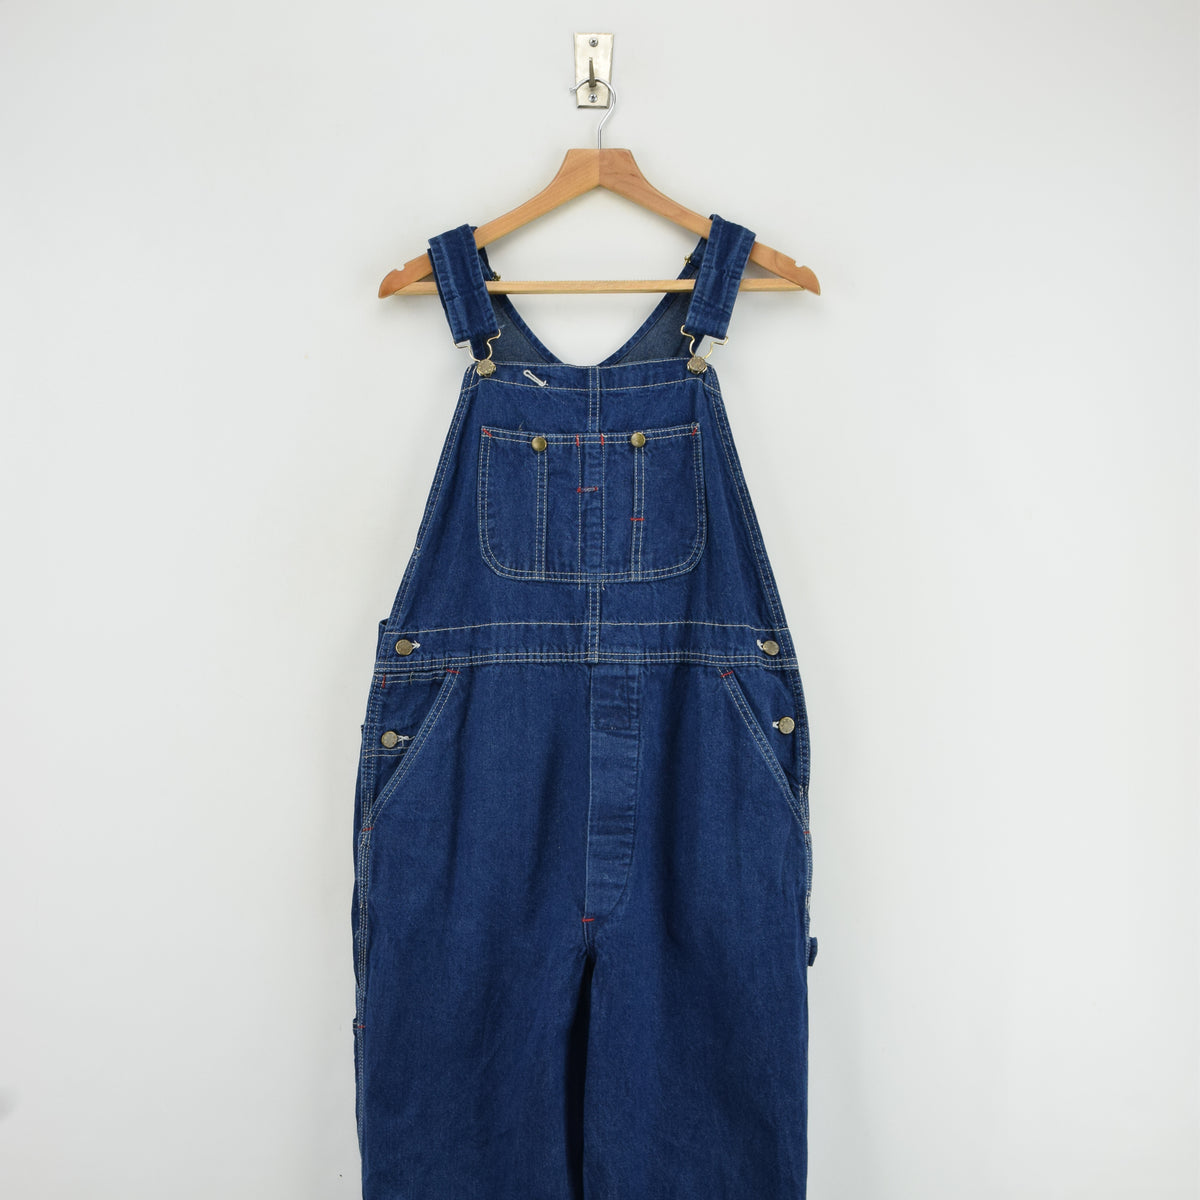 Vintage Big Yank Denim Work Dungarees Blue Bib Overalls Trousers Med 32 W front